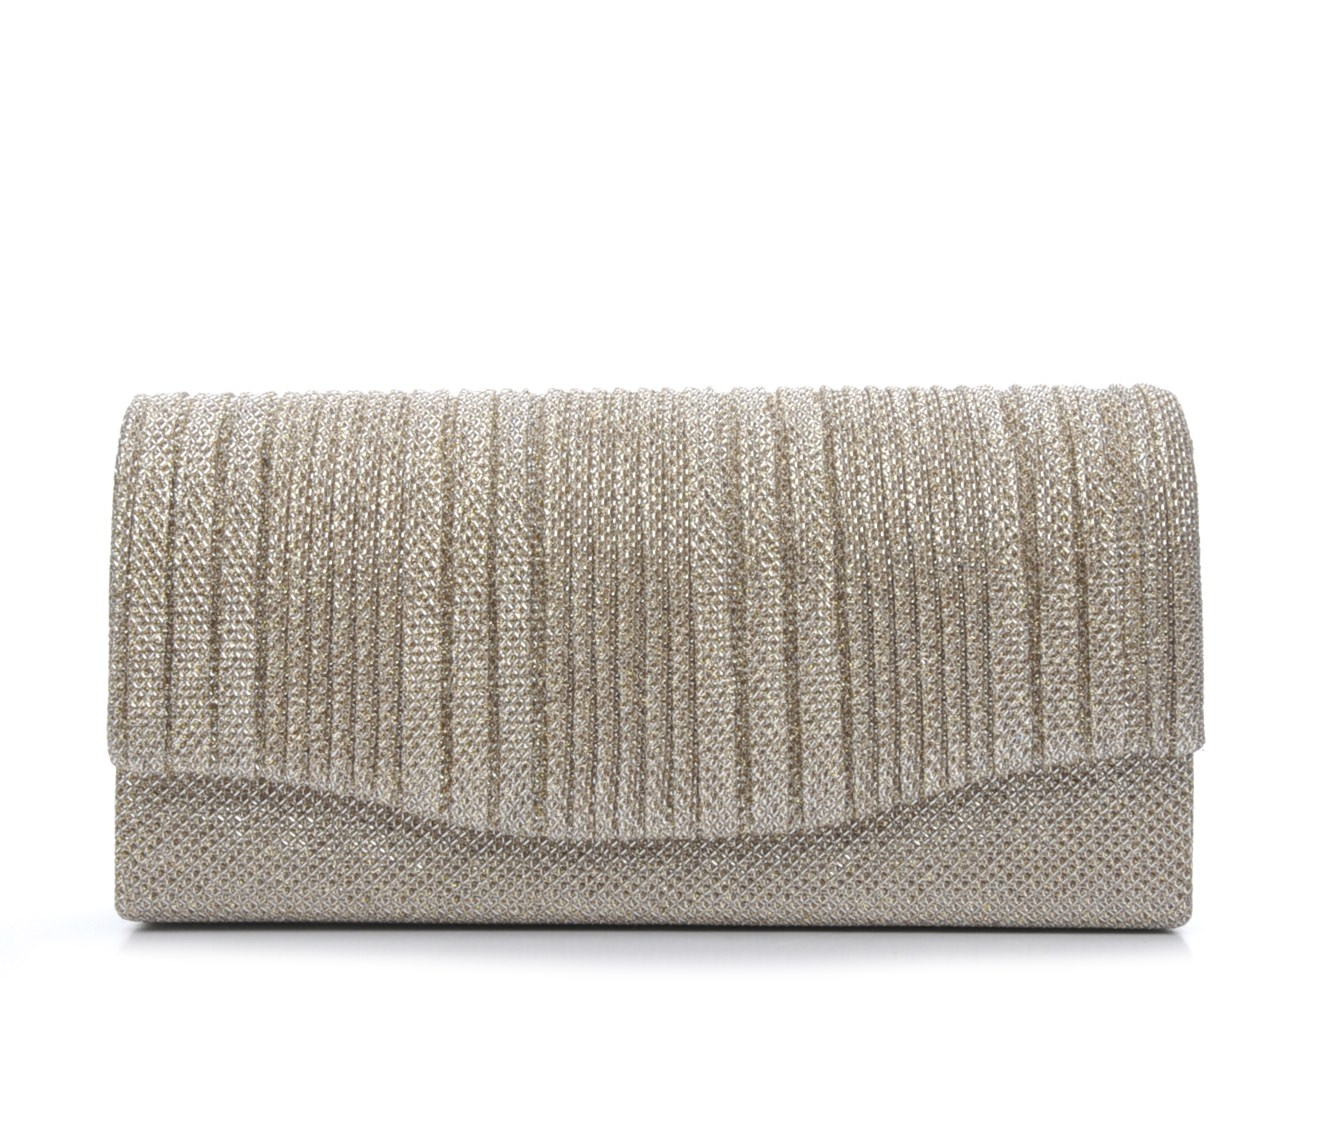 Four Seasons Handbags Small Vertical Stripe Evening Clutch (Beige)